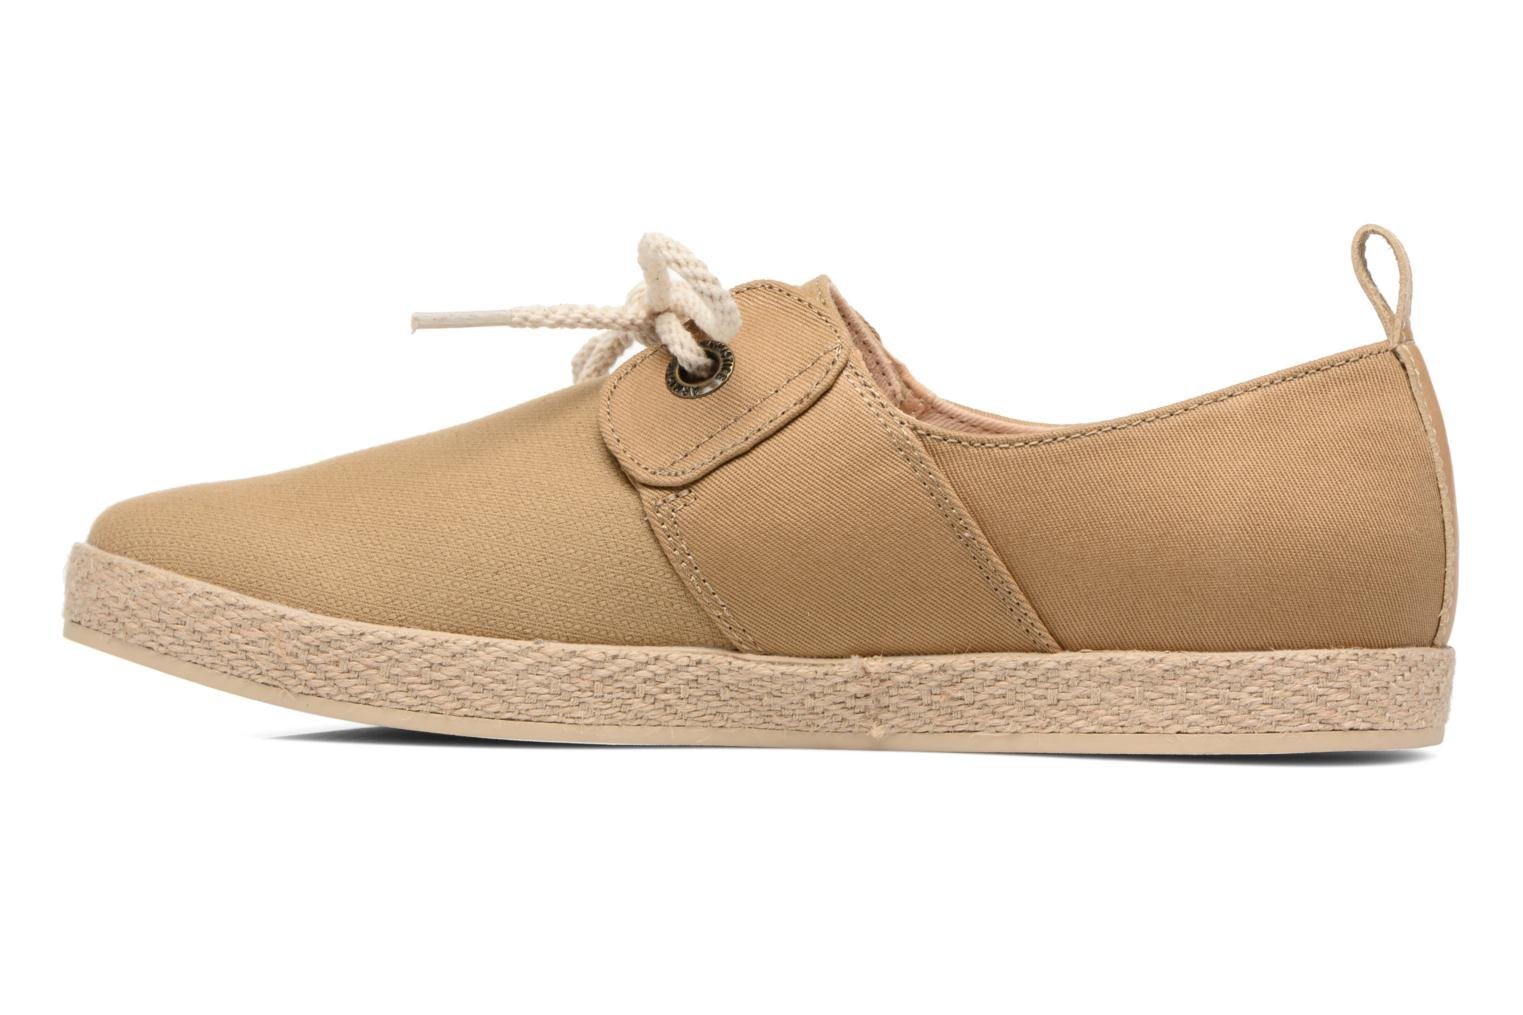 Cargo One Papyrus Natural Tan